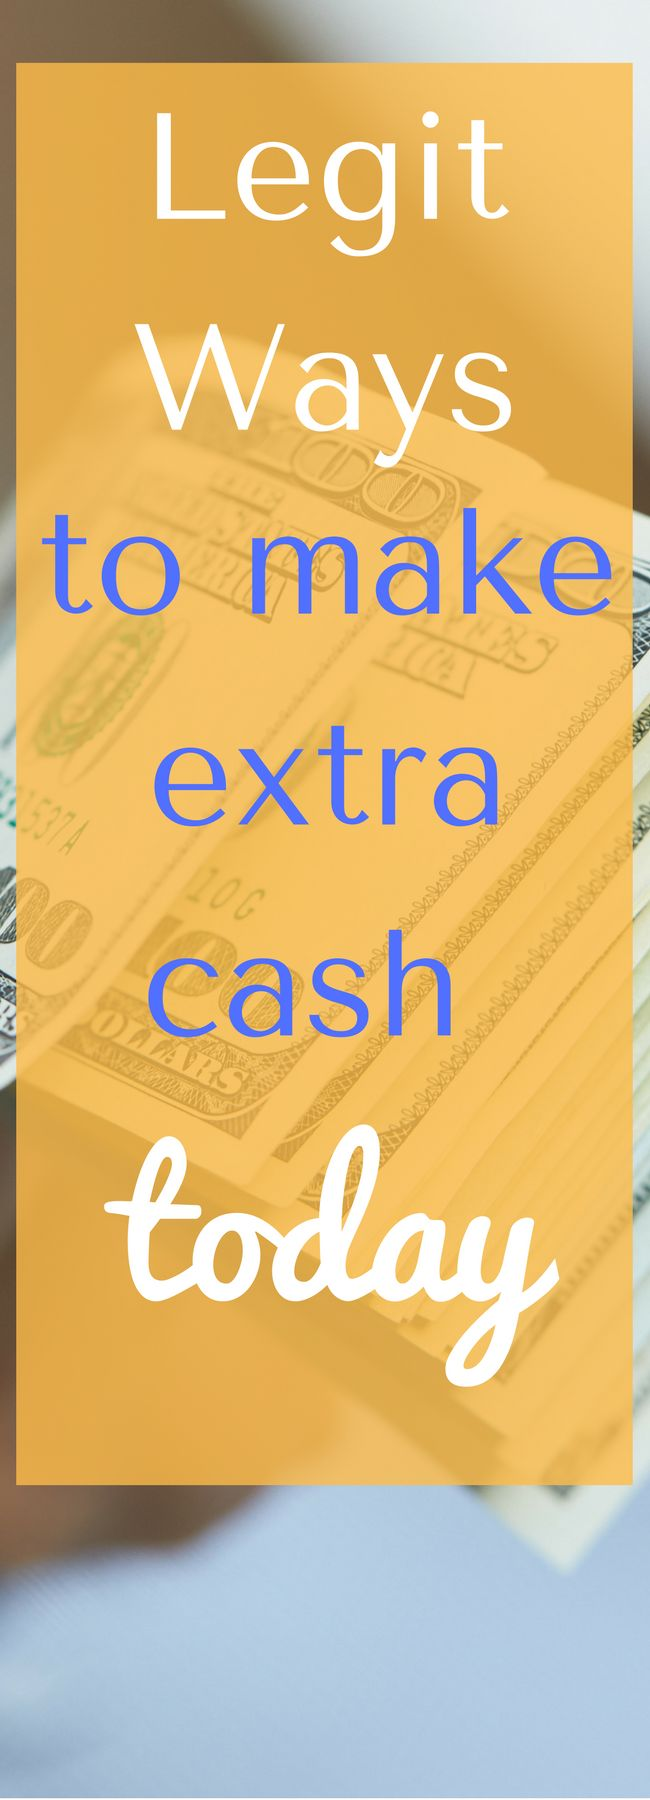 Need extra cash? Here are some legit ways to make that extra money today.